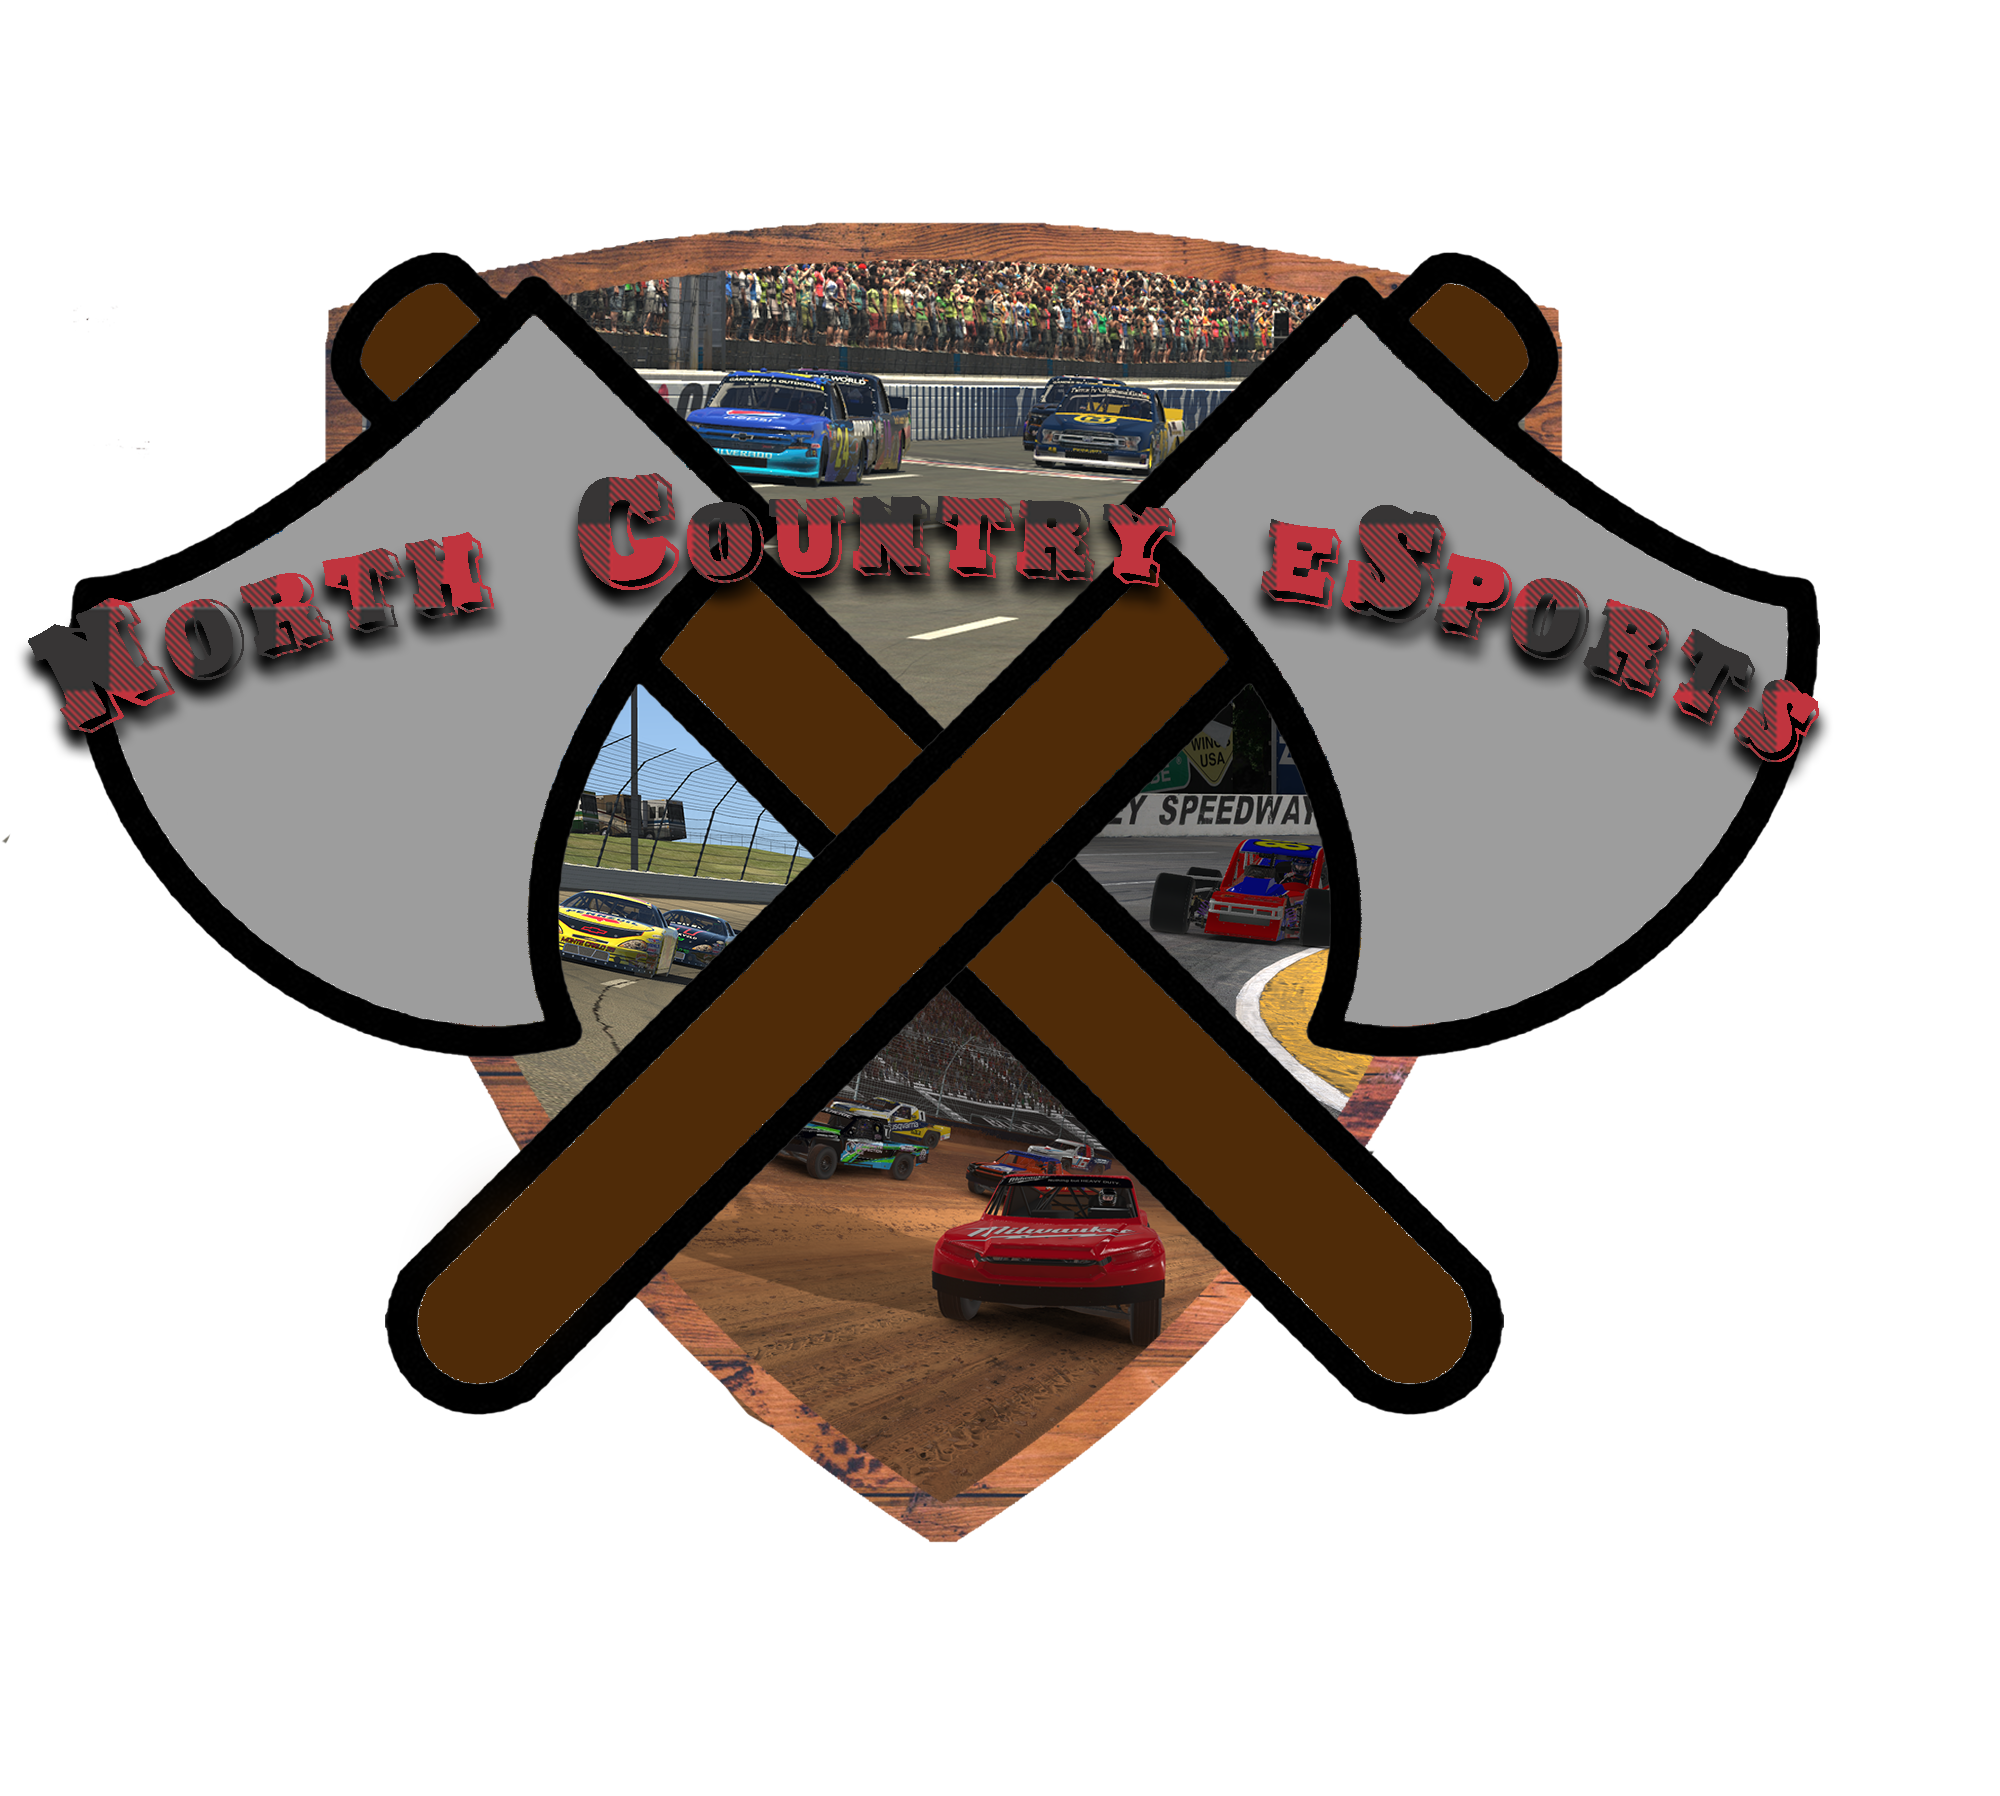 North Country eSports